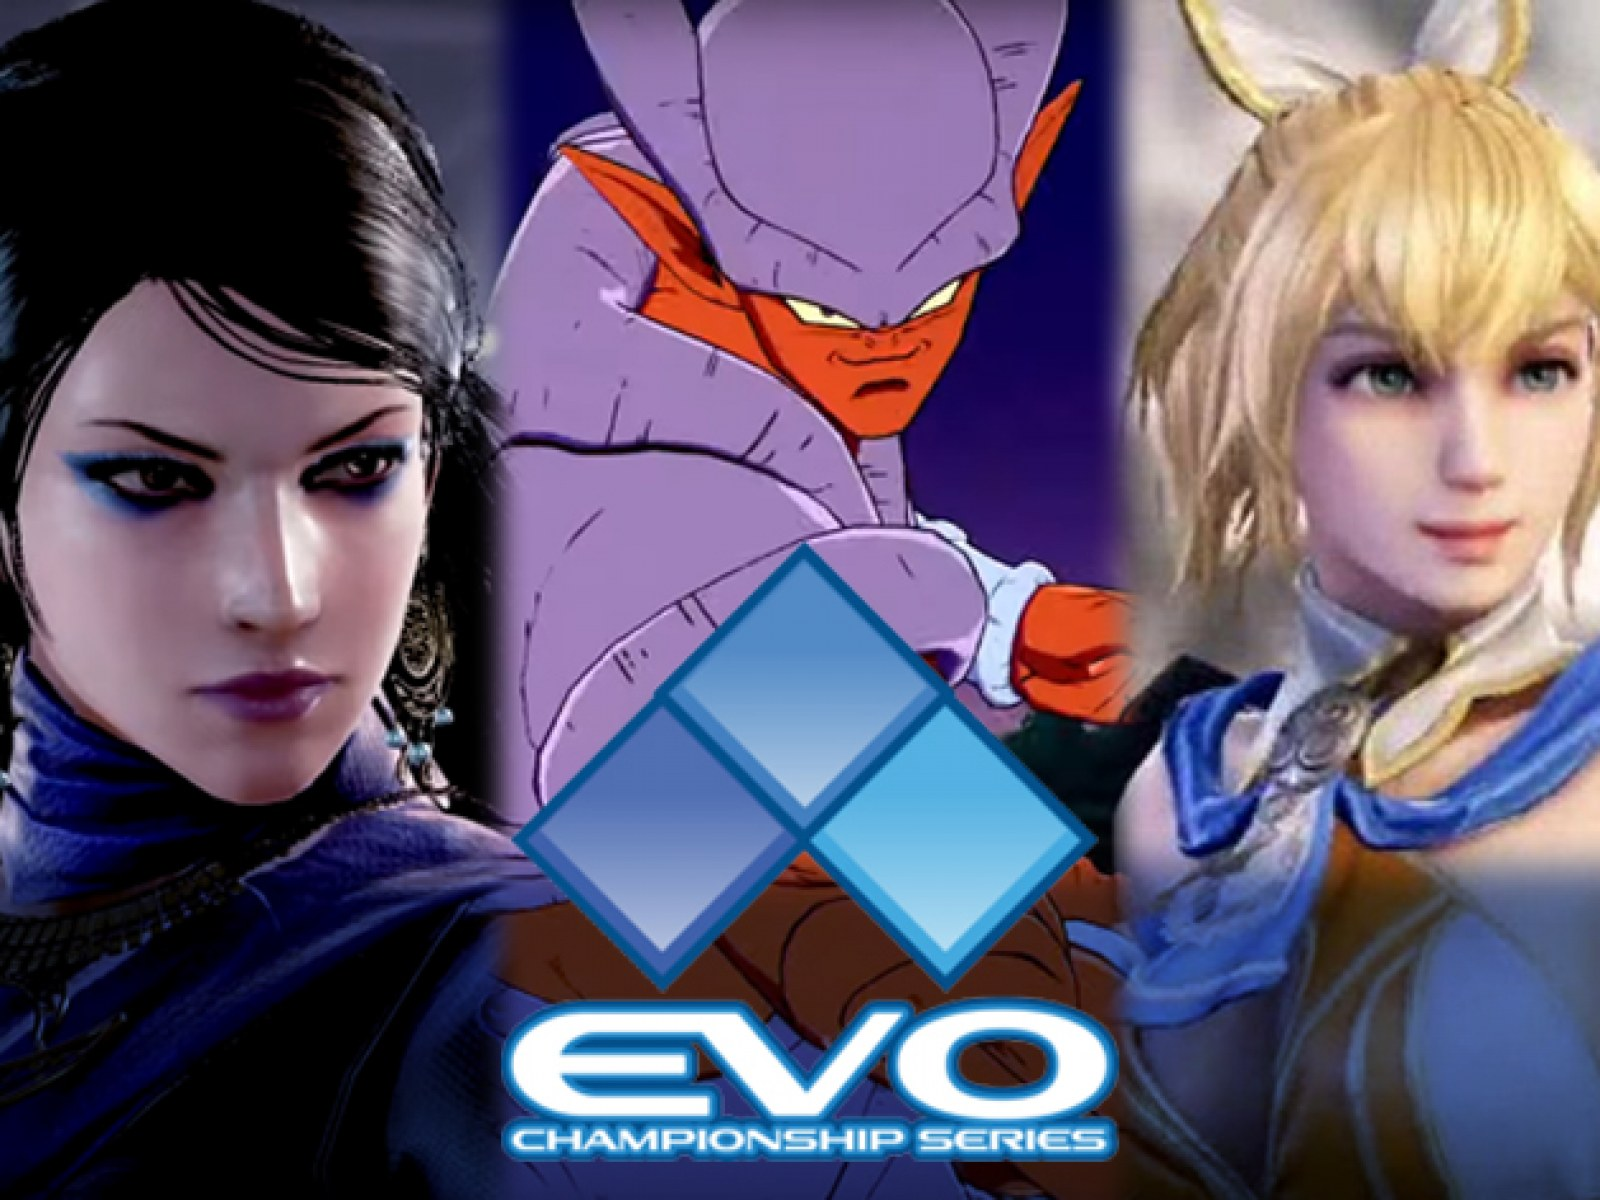 EVO 2019: Every Announcement and Trailer